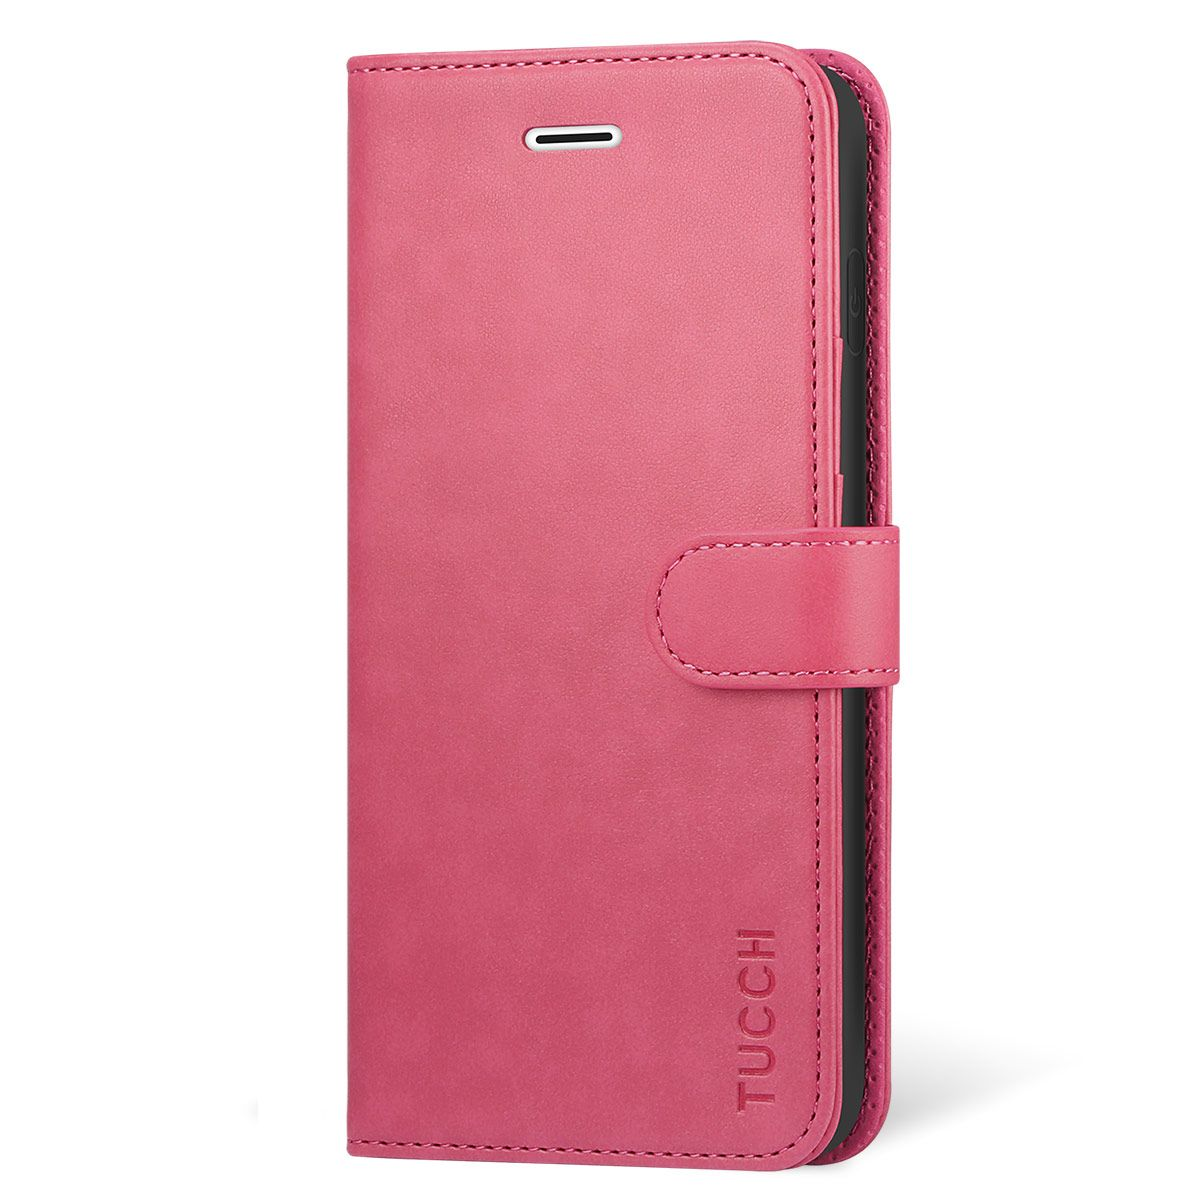 new styles 7c3d8 282f0 TUCCH iPhone X Case, PU Leather Purse Protective Cover KickStand Flip Book  Case, TPU Shockproof Interior Case